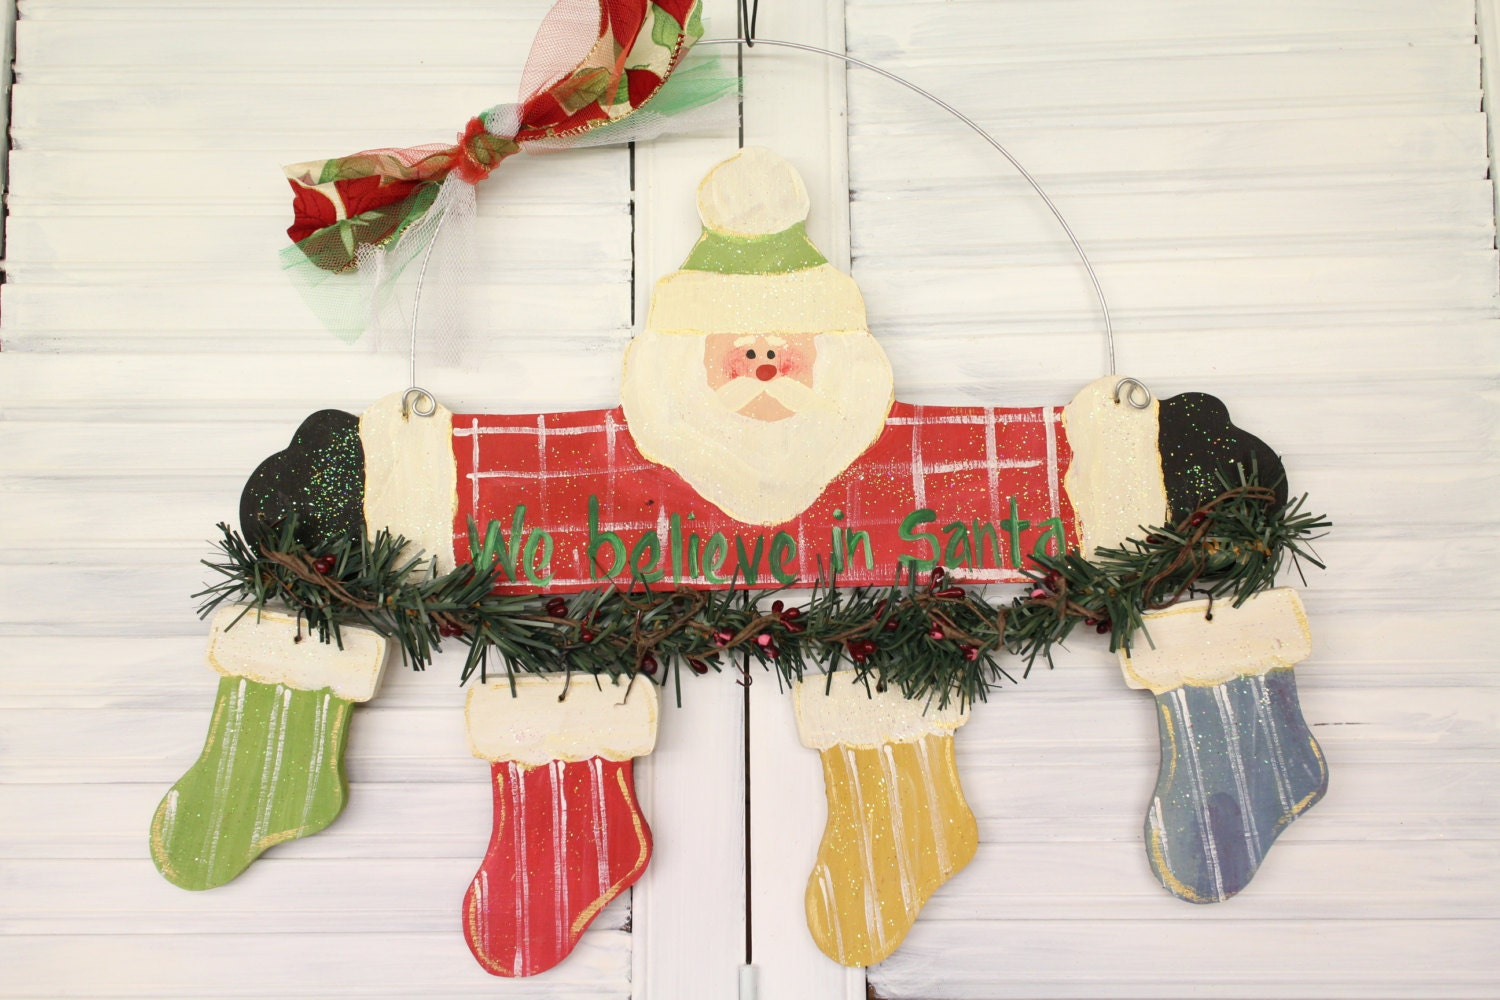 Santa Clause Stockings Hand Painted Wood Christmas Sign